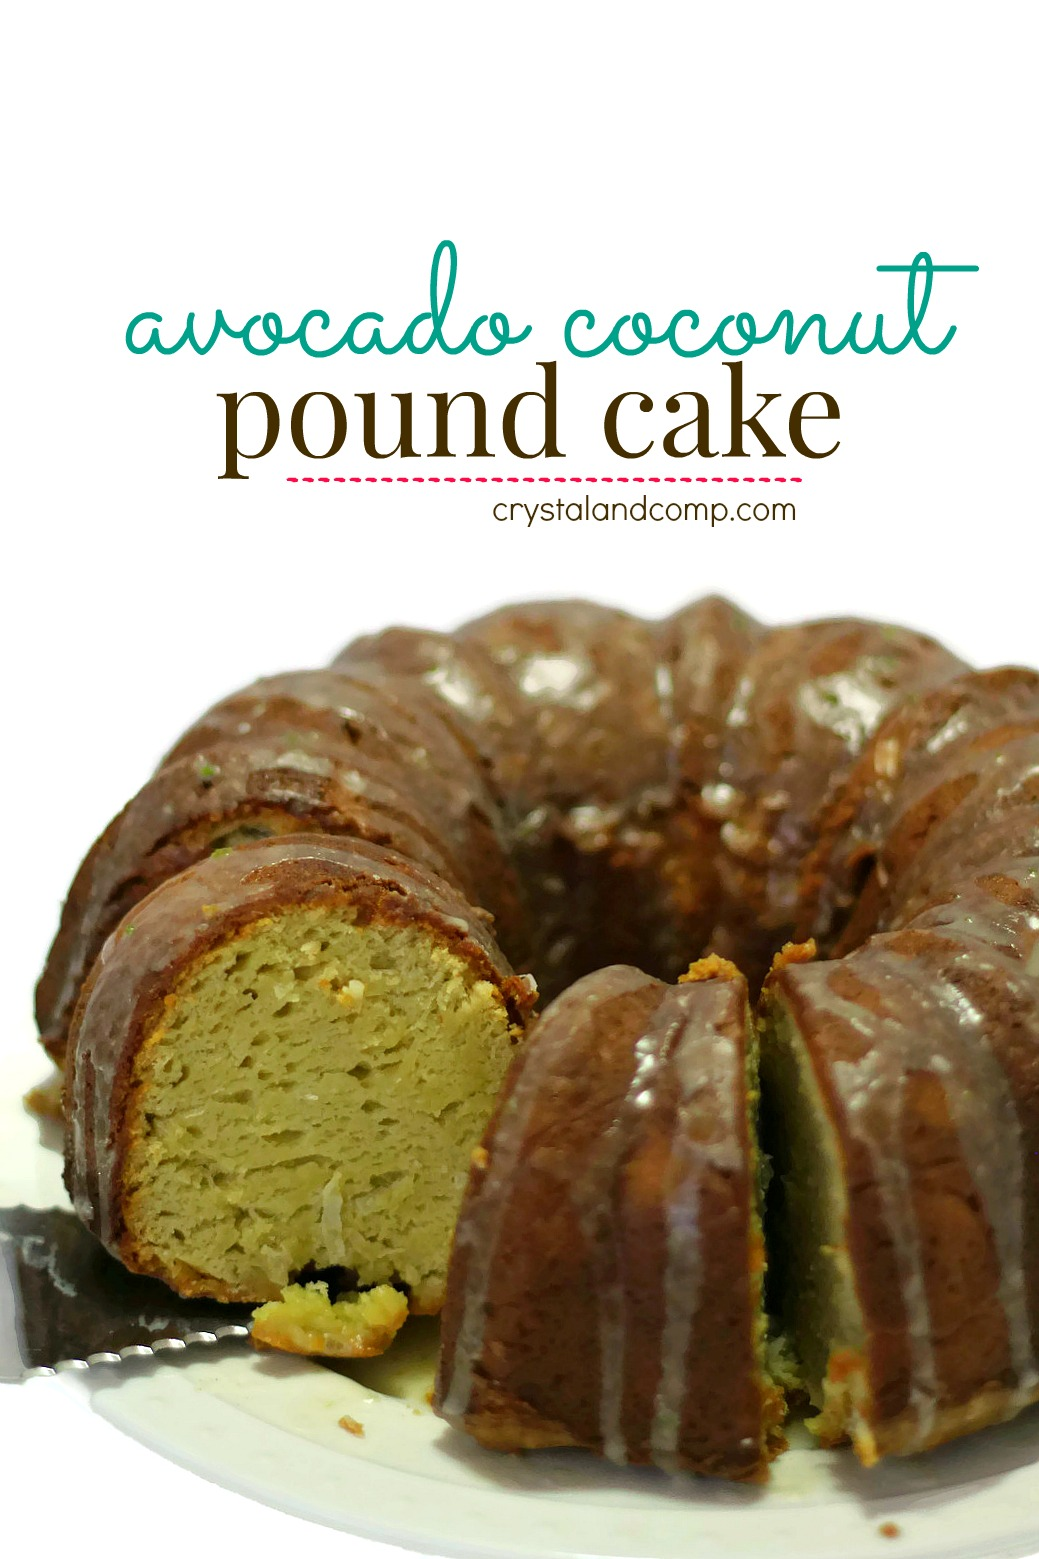 Pound Cake Recipe Using Avocado